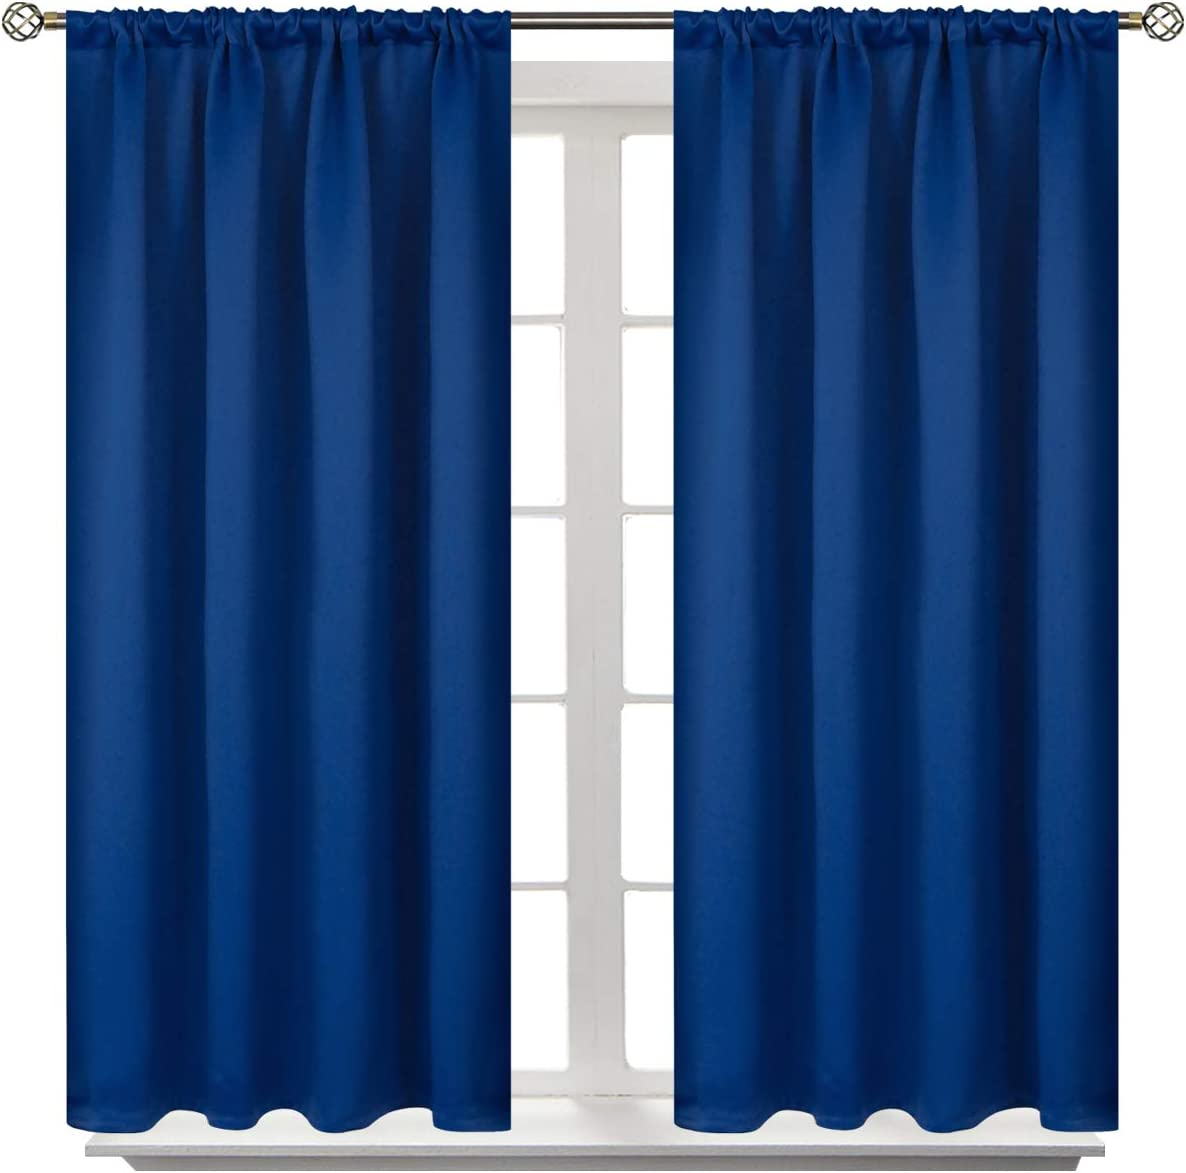 BGment Rod Pocket Blackout Curtains for Bedroom - Thermal Insulated Room Darkening Curtain for Living Room, 42 x 54 Inch, 2 Panels, Classic Blue